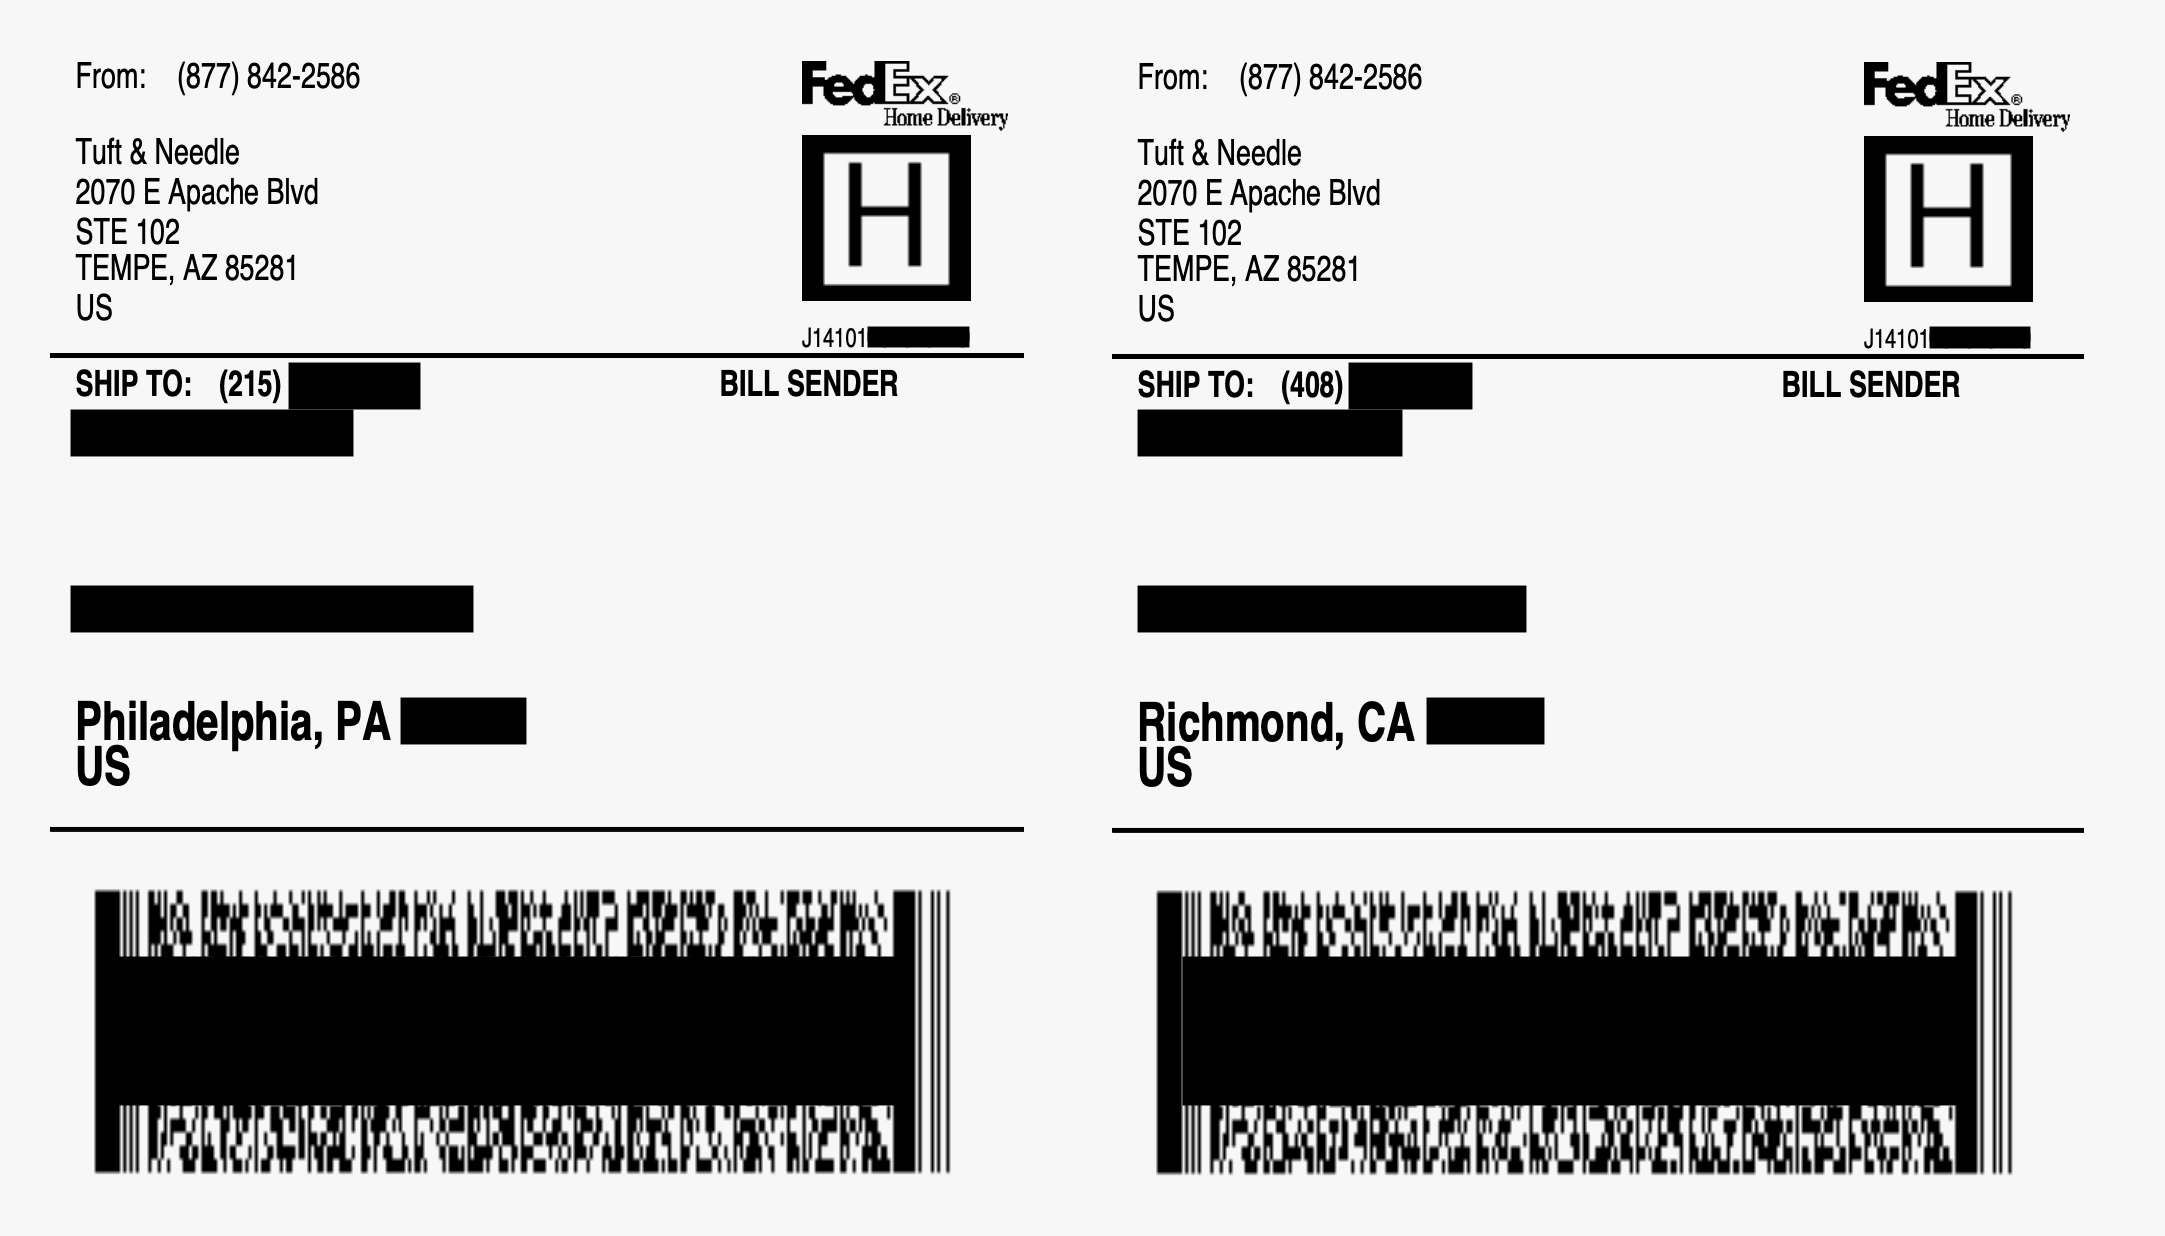 Tuft & Needle exposed thousands of customer shipping labels